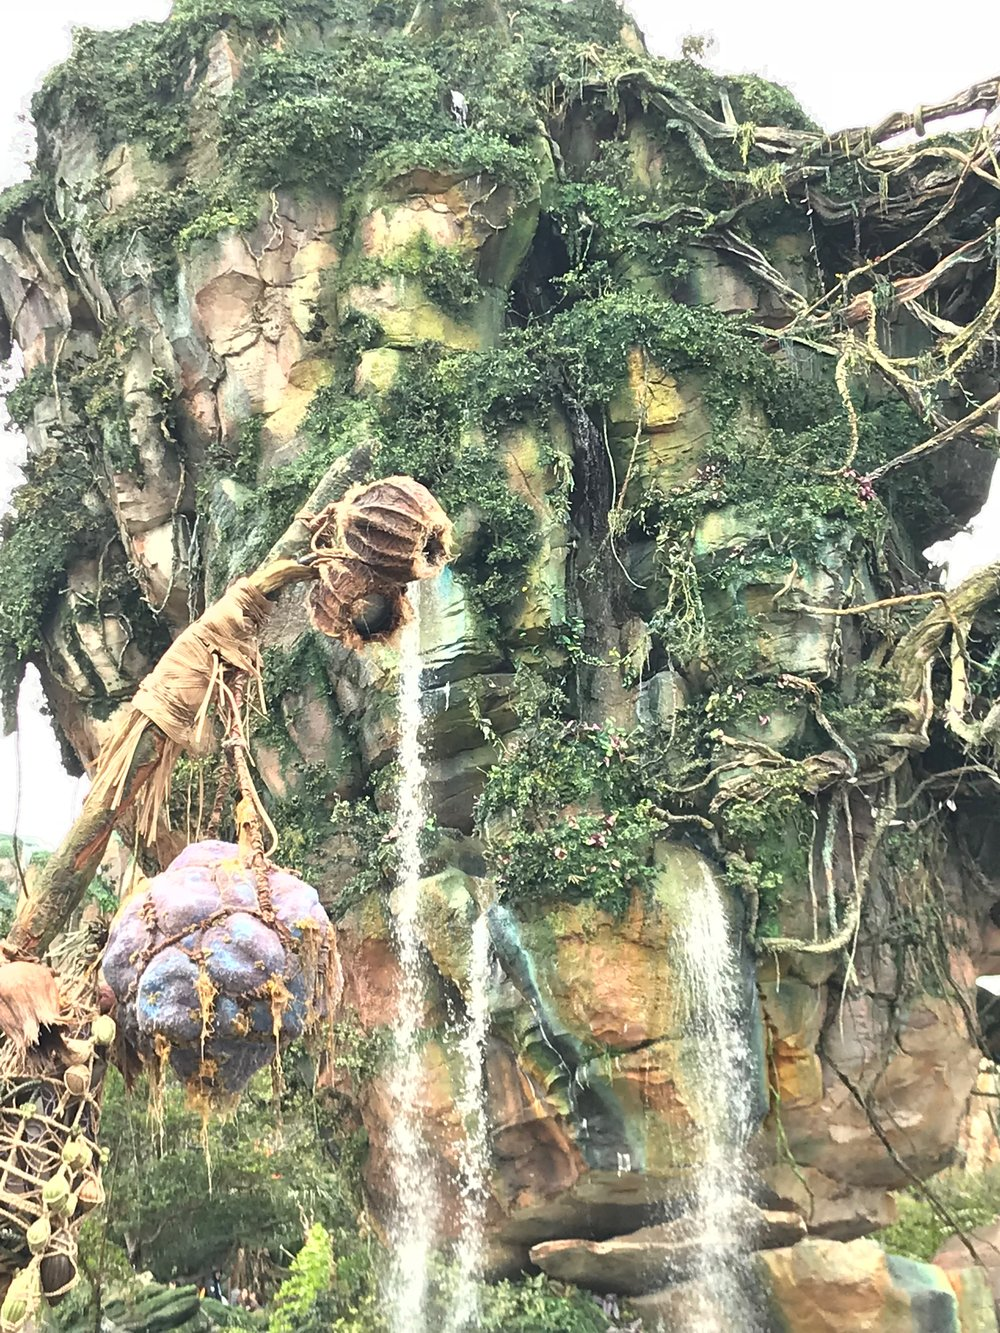 A picture from our visit at disney - it's the new pandora at animal kingdom